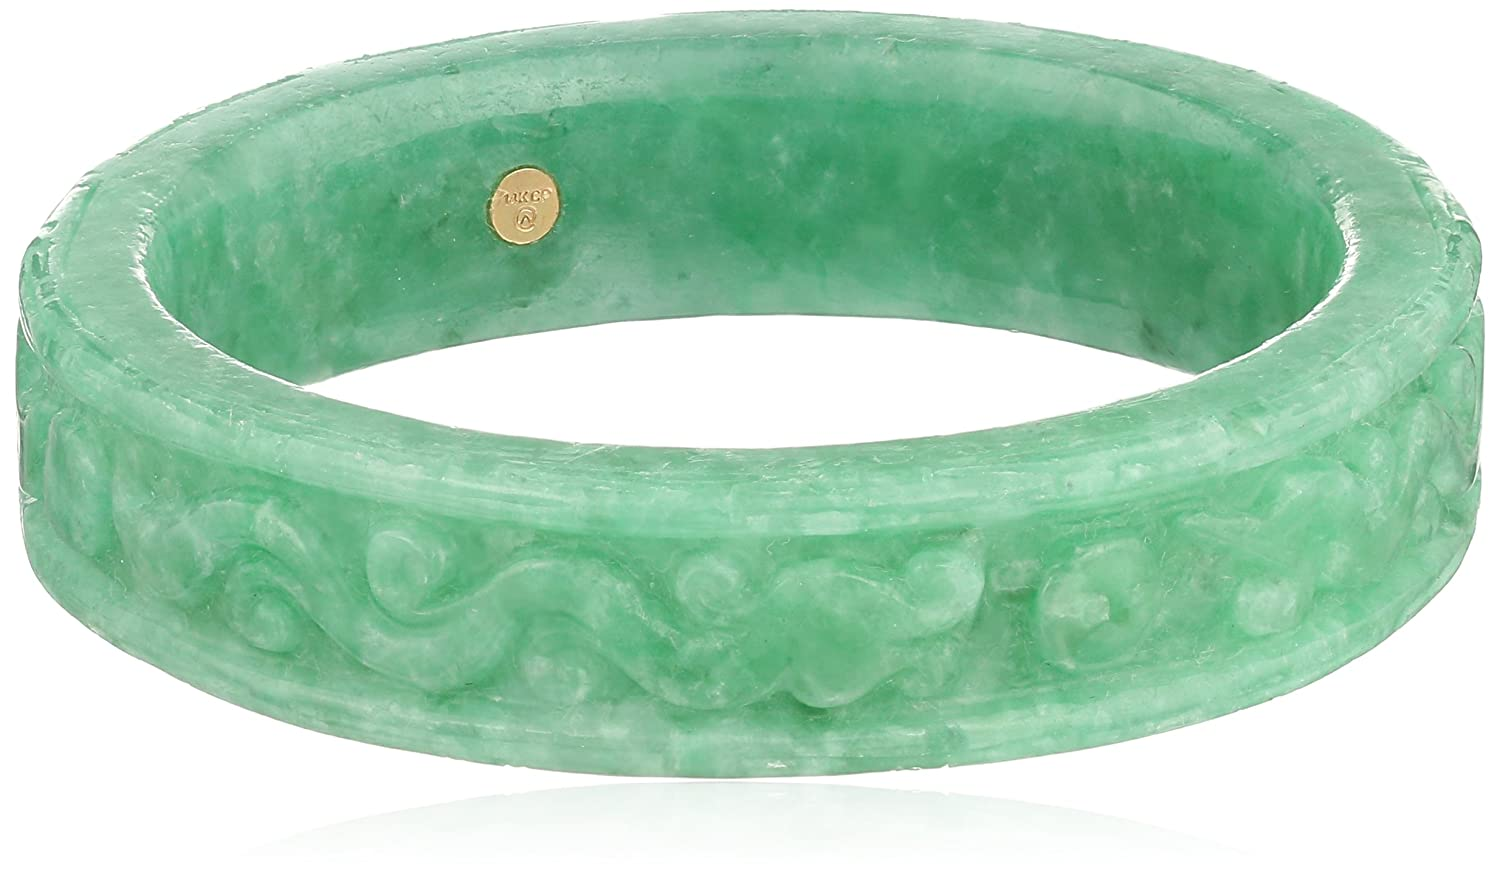 emerald item bangle myanmar pic get margin natural jade shopping the of guide bracelet quotations at china com kinds a cargo waxy alibaba genuine guides